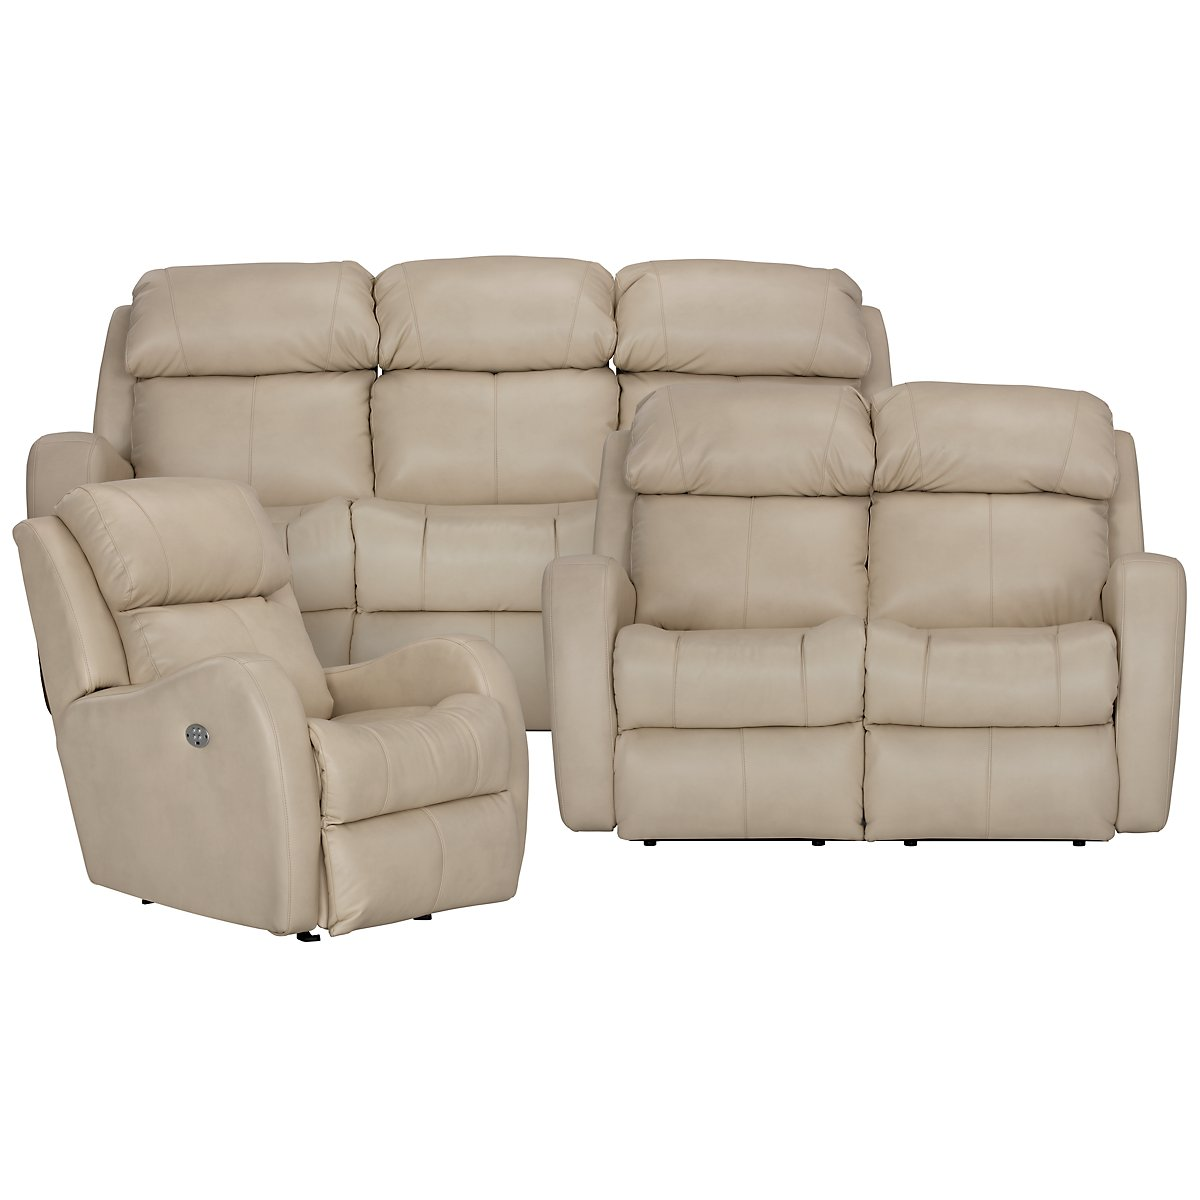 Finn Light Beige Microfiber Manually Reclining Living Room